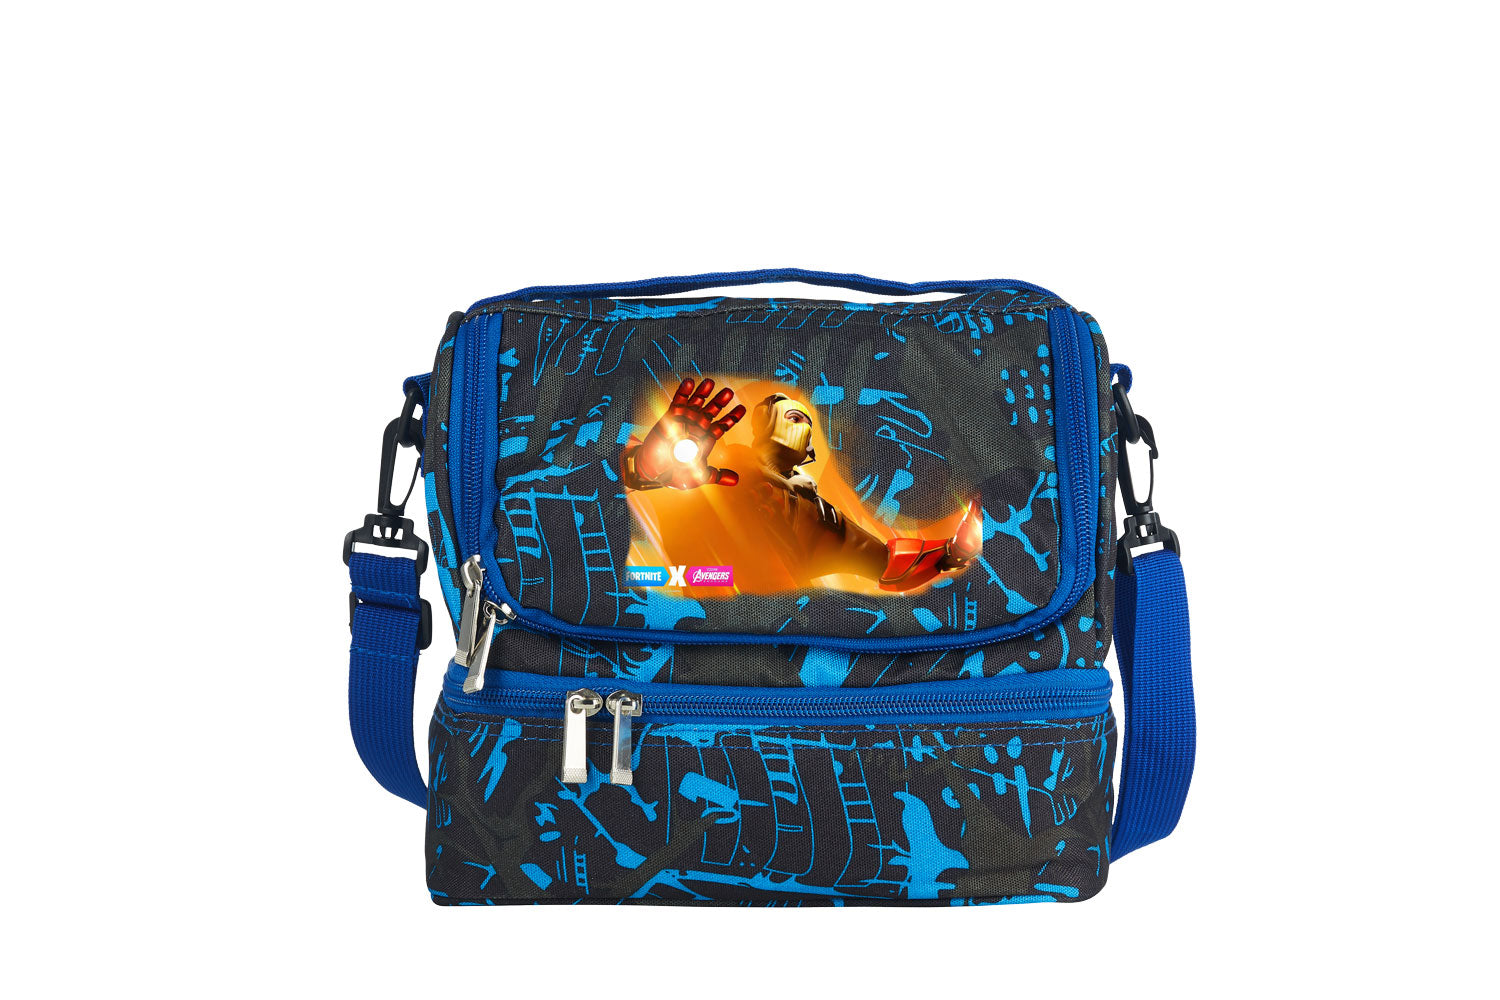 Fortnite Themed End Game Iron Man Two Compartment Graffiti Lunch Bag